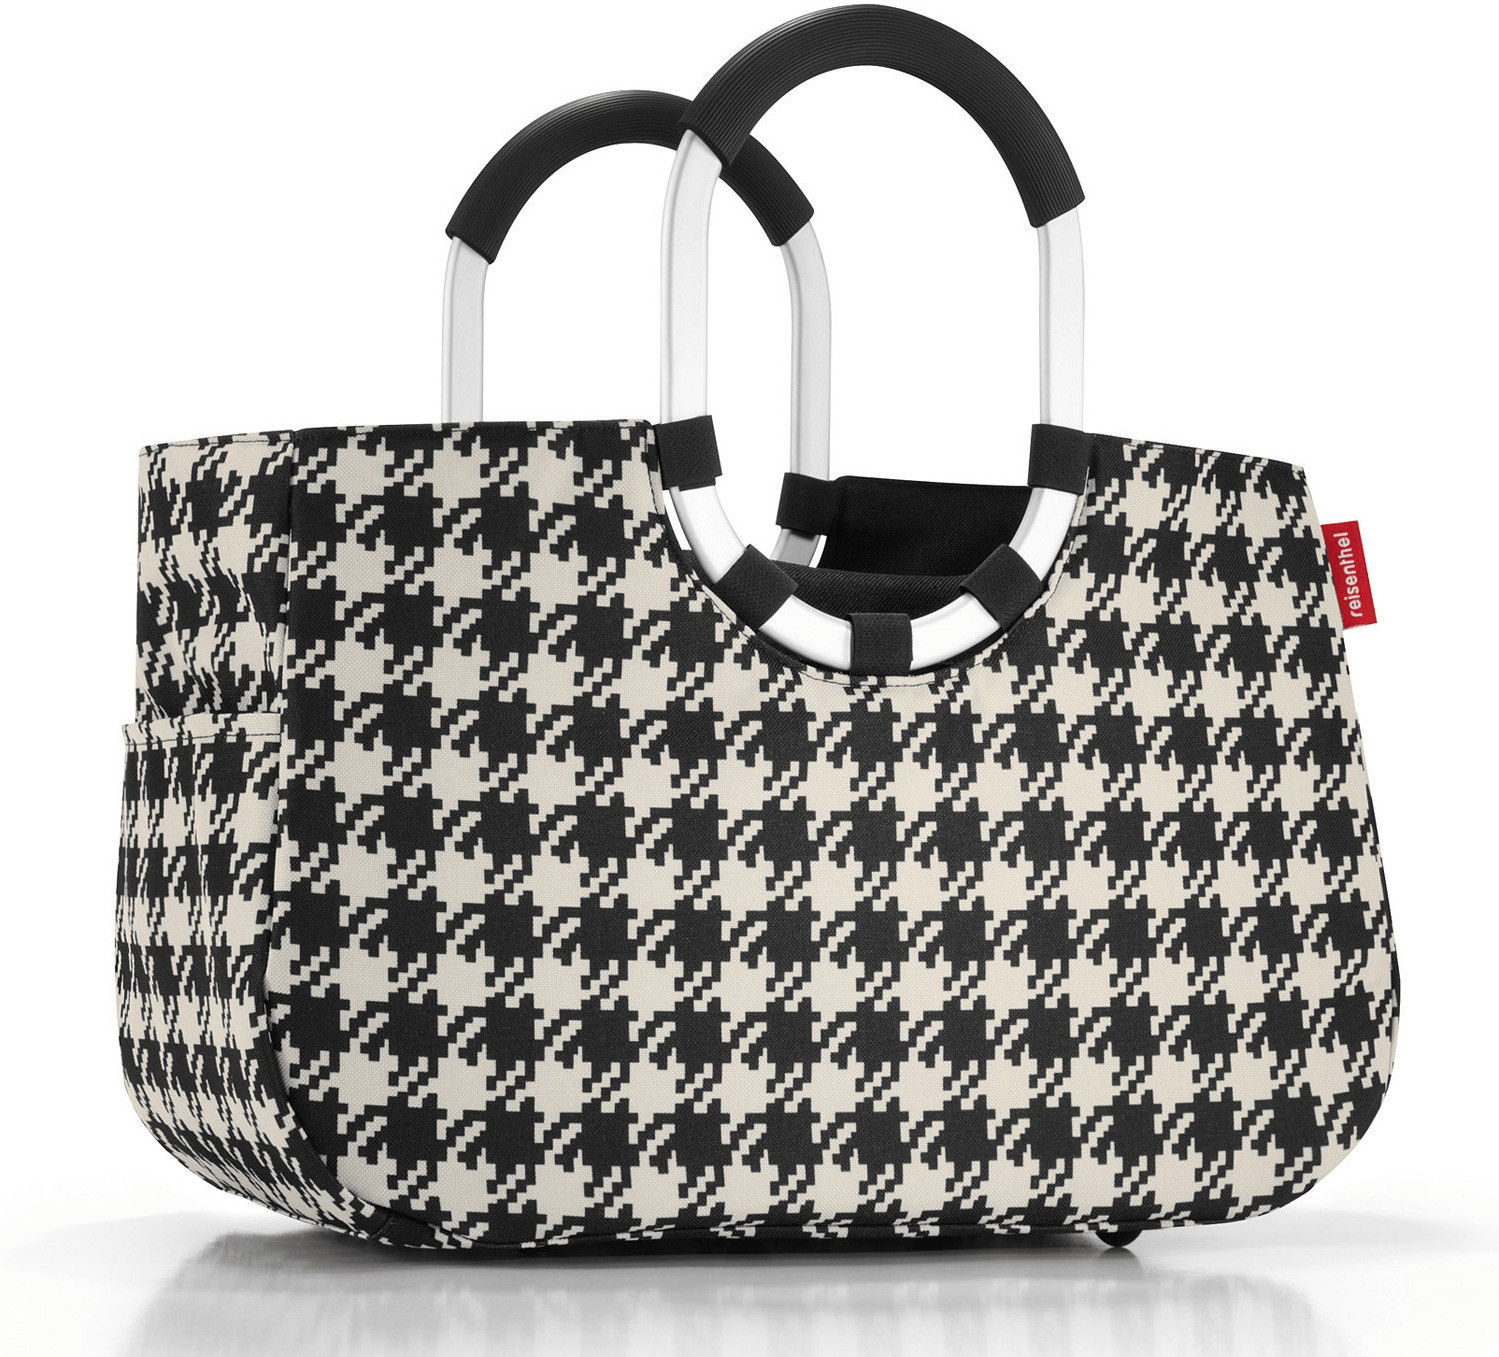 Reisenthel Loopshopper M fifties black